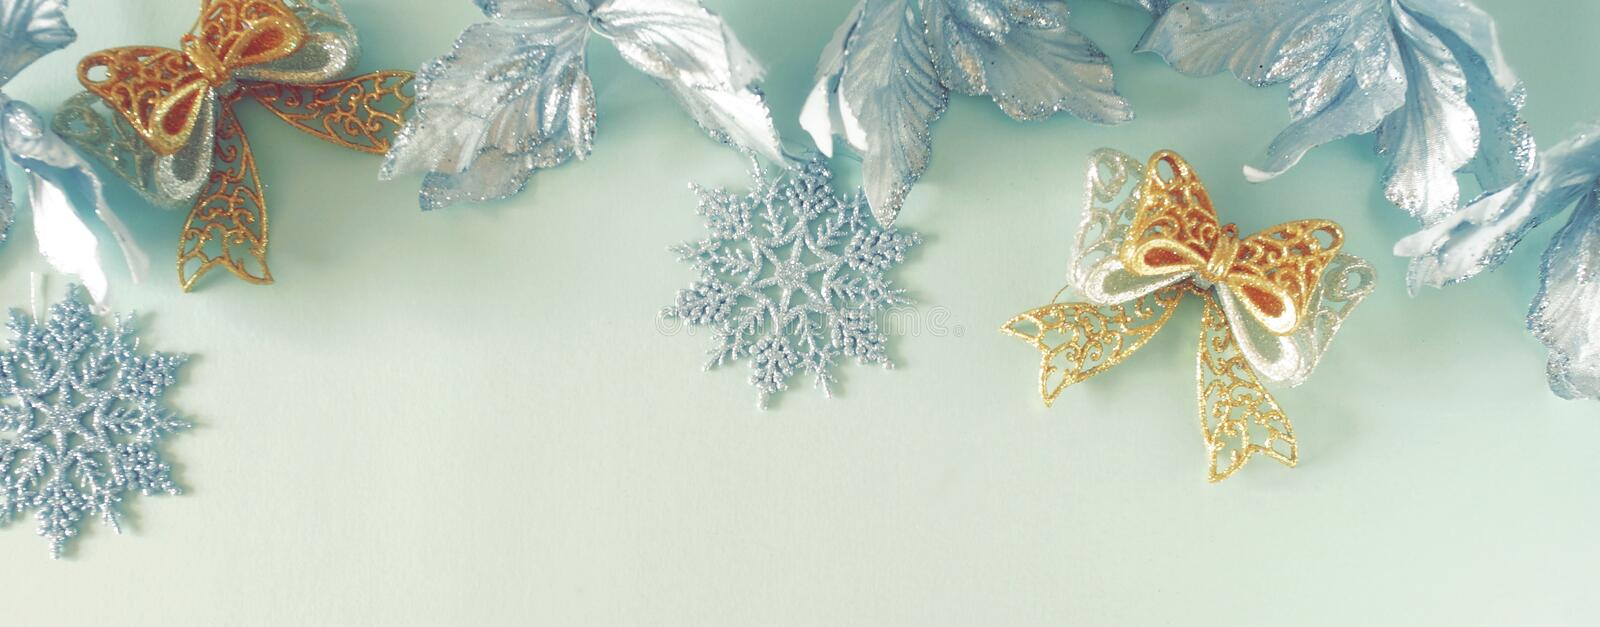 Christmas background . Xmas or new year white silver color decorations on blue  background stock photo